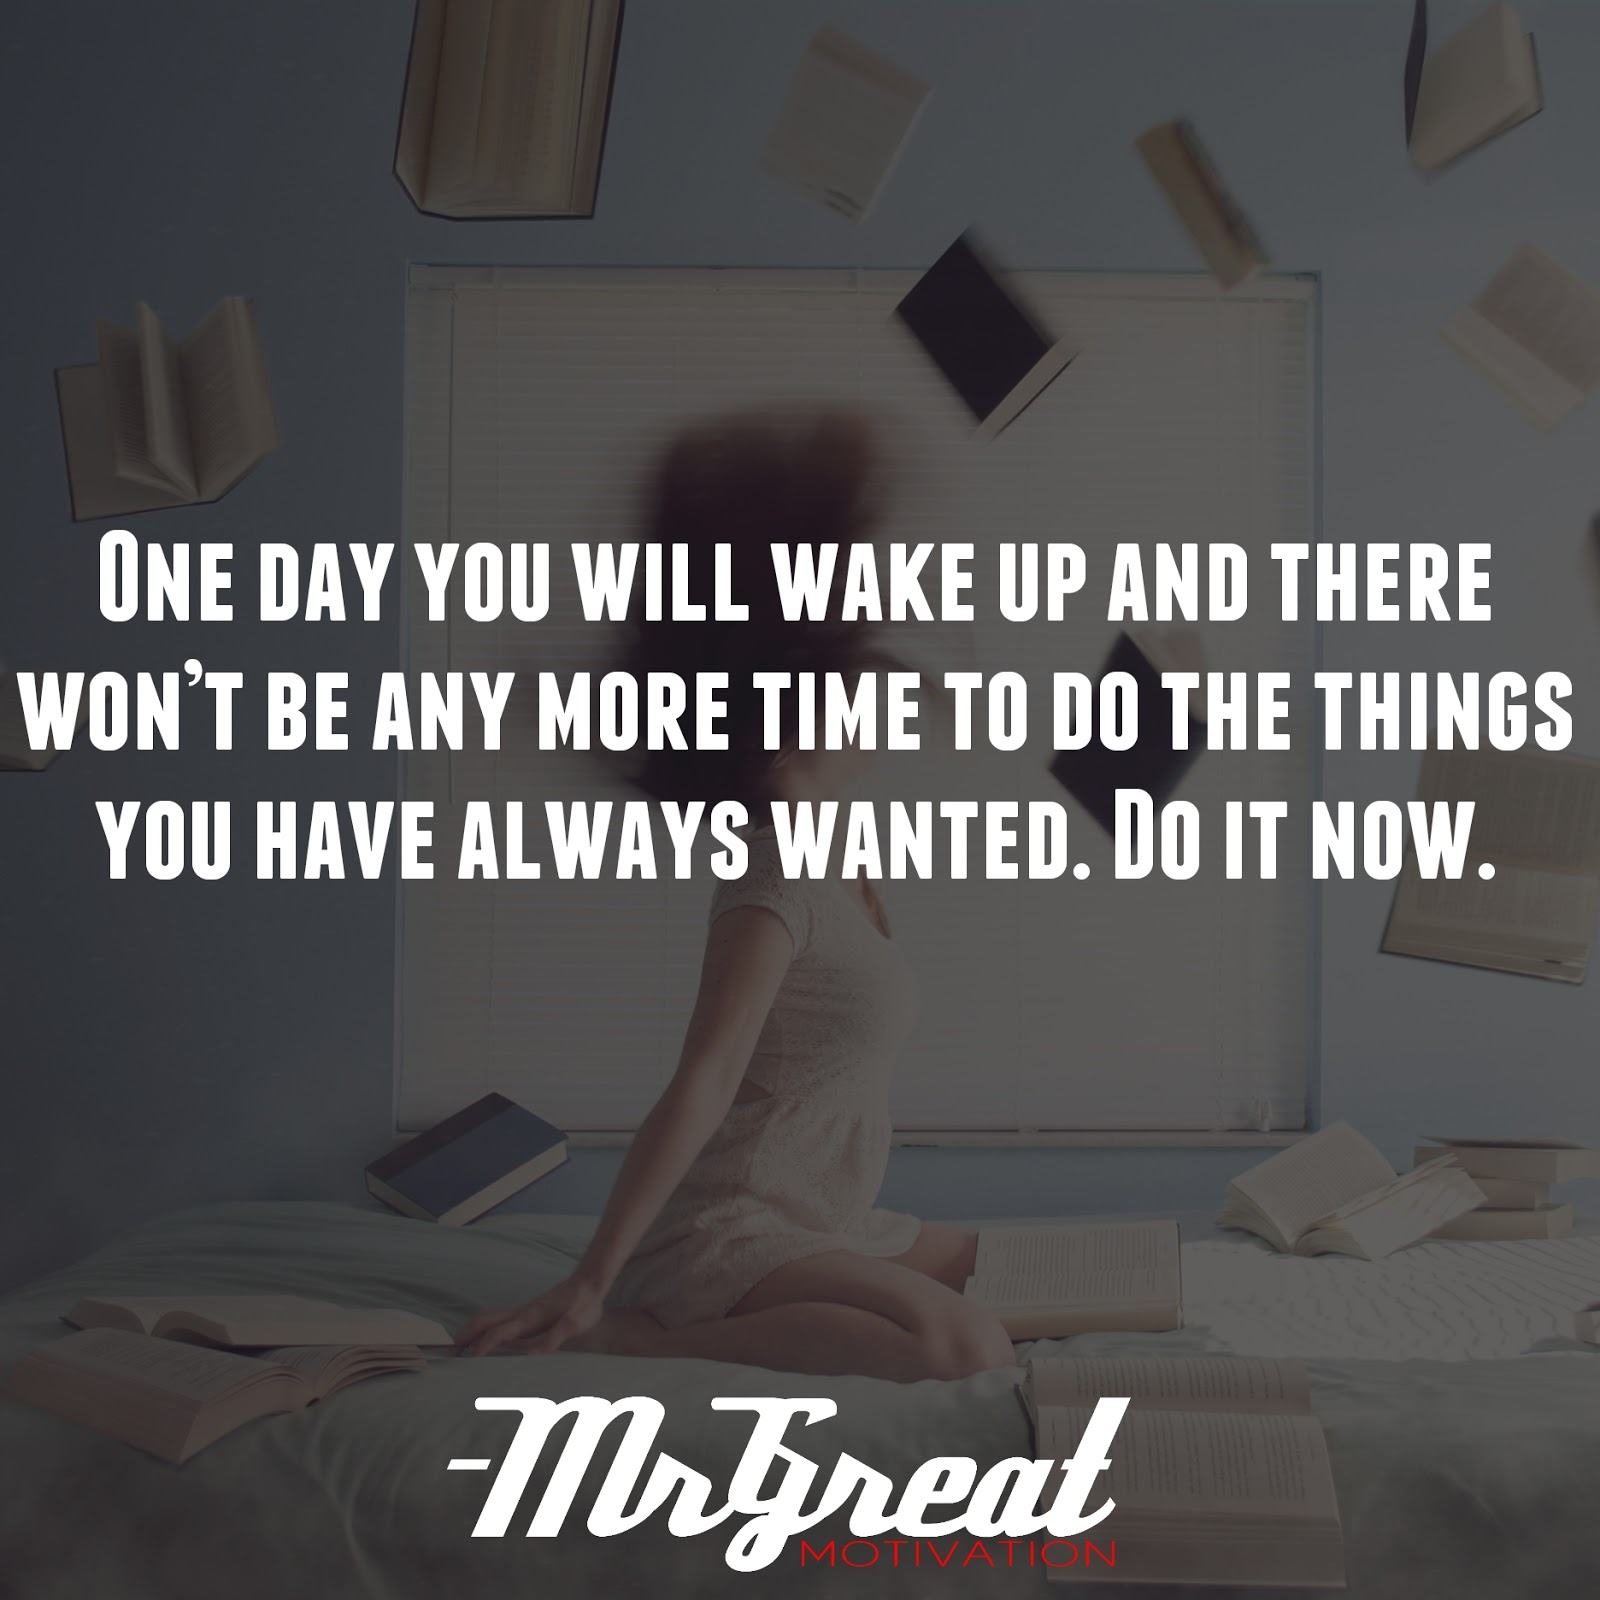 One day you will wake up and there won't be any more time to do the things you have always wanted. Do it now - Paulo Coelho